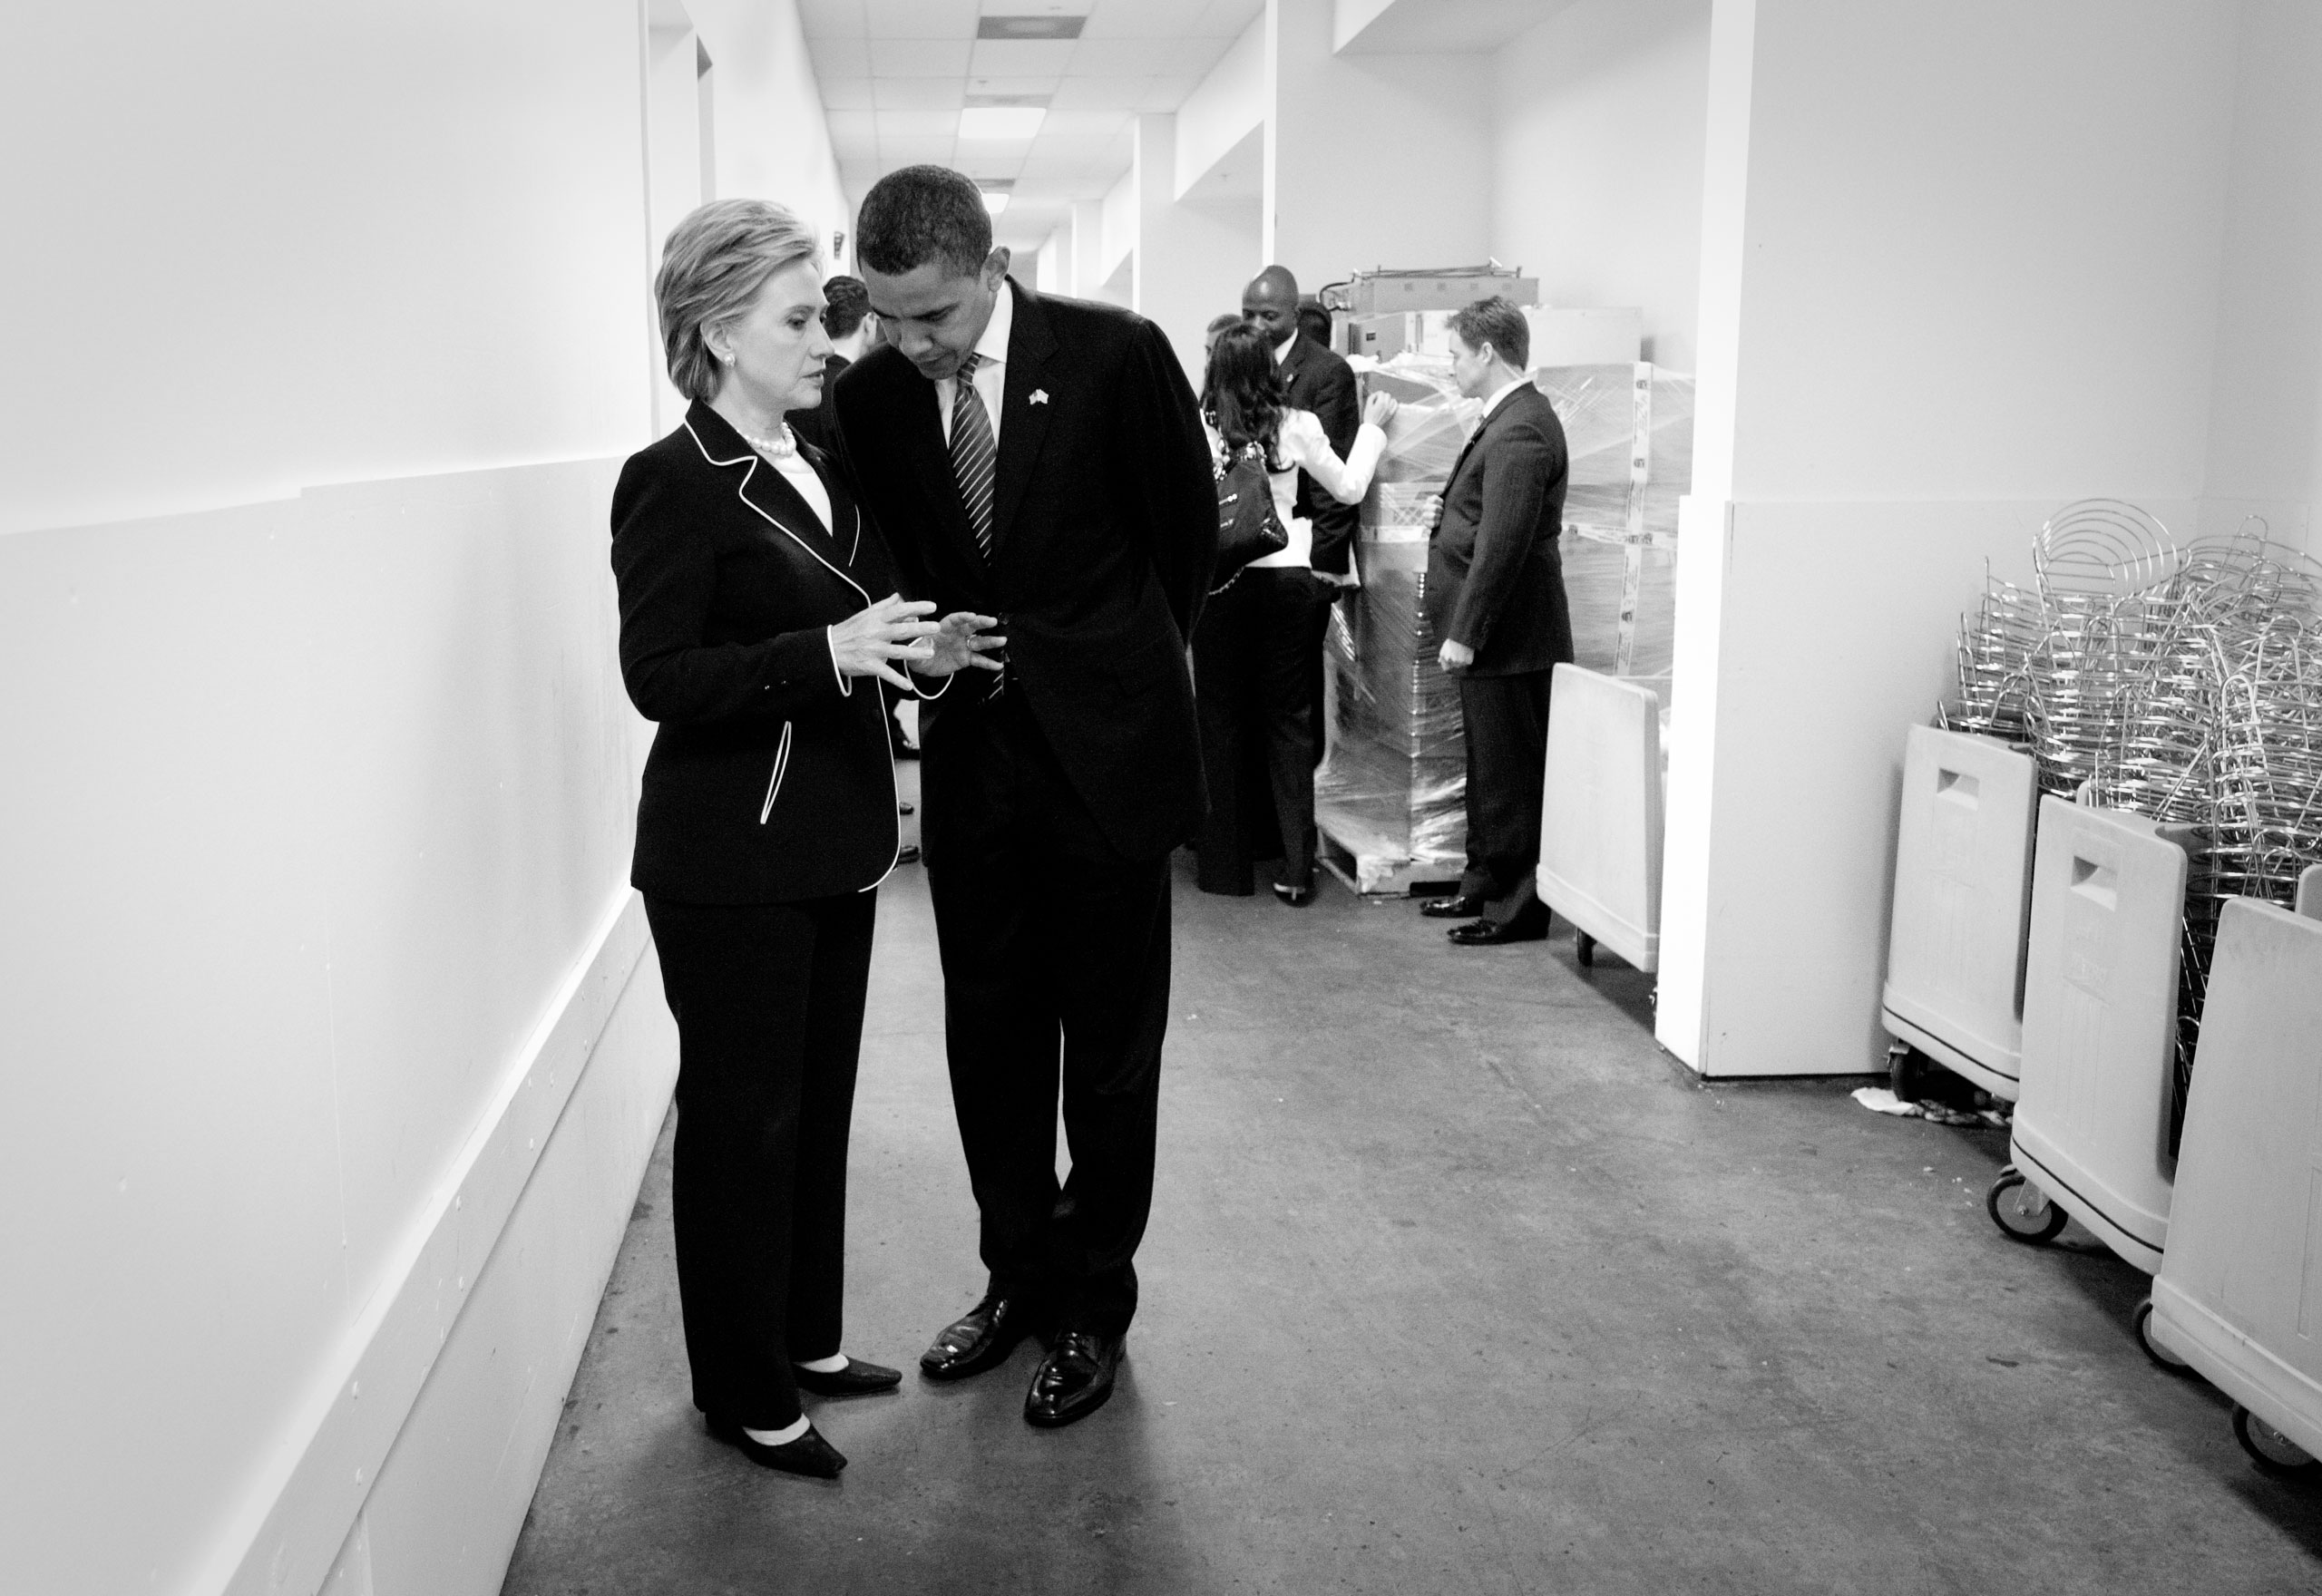 Sen. Clinton and Sen. Obama meeting unexpectedly in the back hall of the Washington convention center, the day after the last primary elections when it had become apparent that Obama had the most delegate votes, yet Clinton had not conceded.